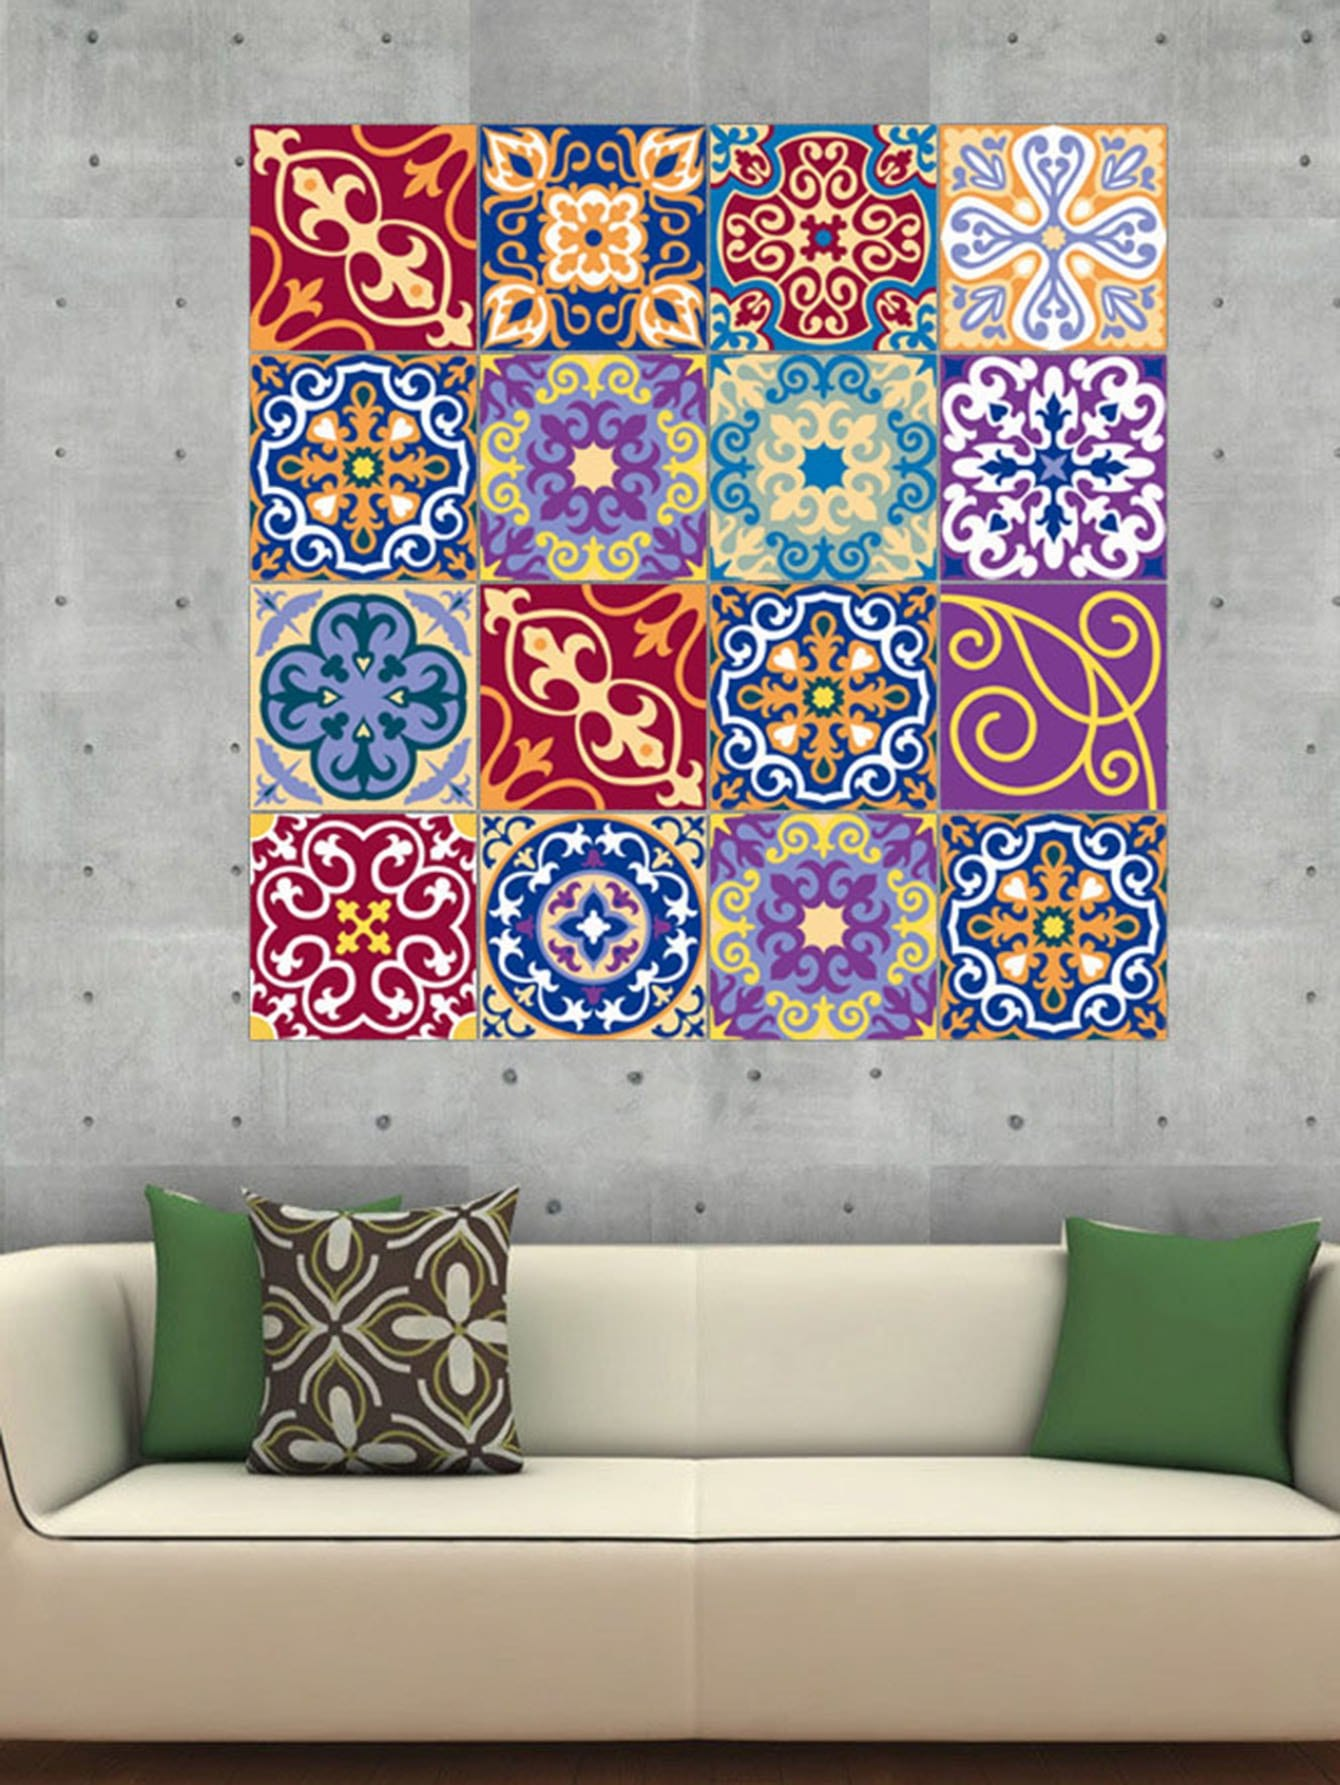 Random Damask Patchwork Ceramic Tile Sticker 1pc random stone spliced ceramic tile sticker 1pc